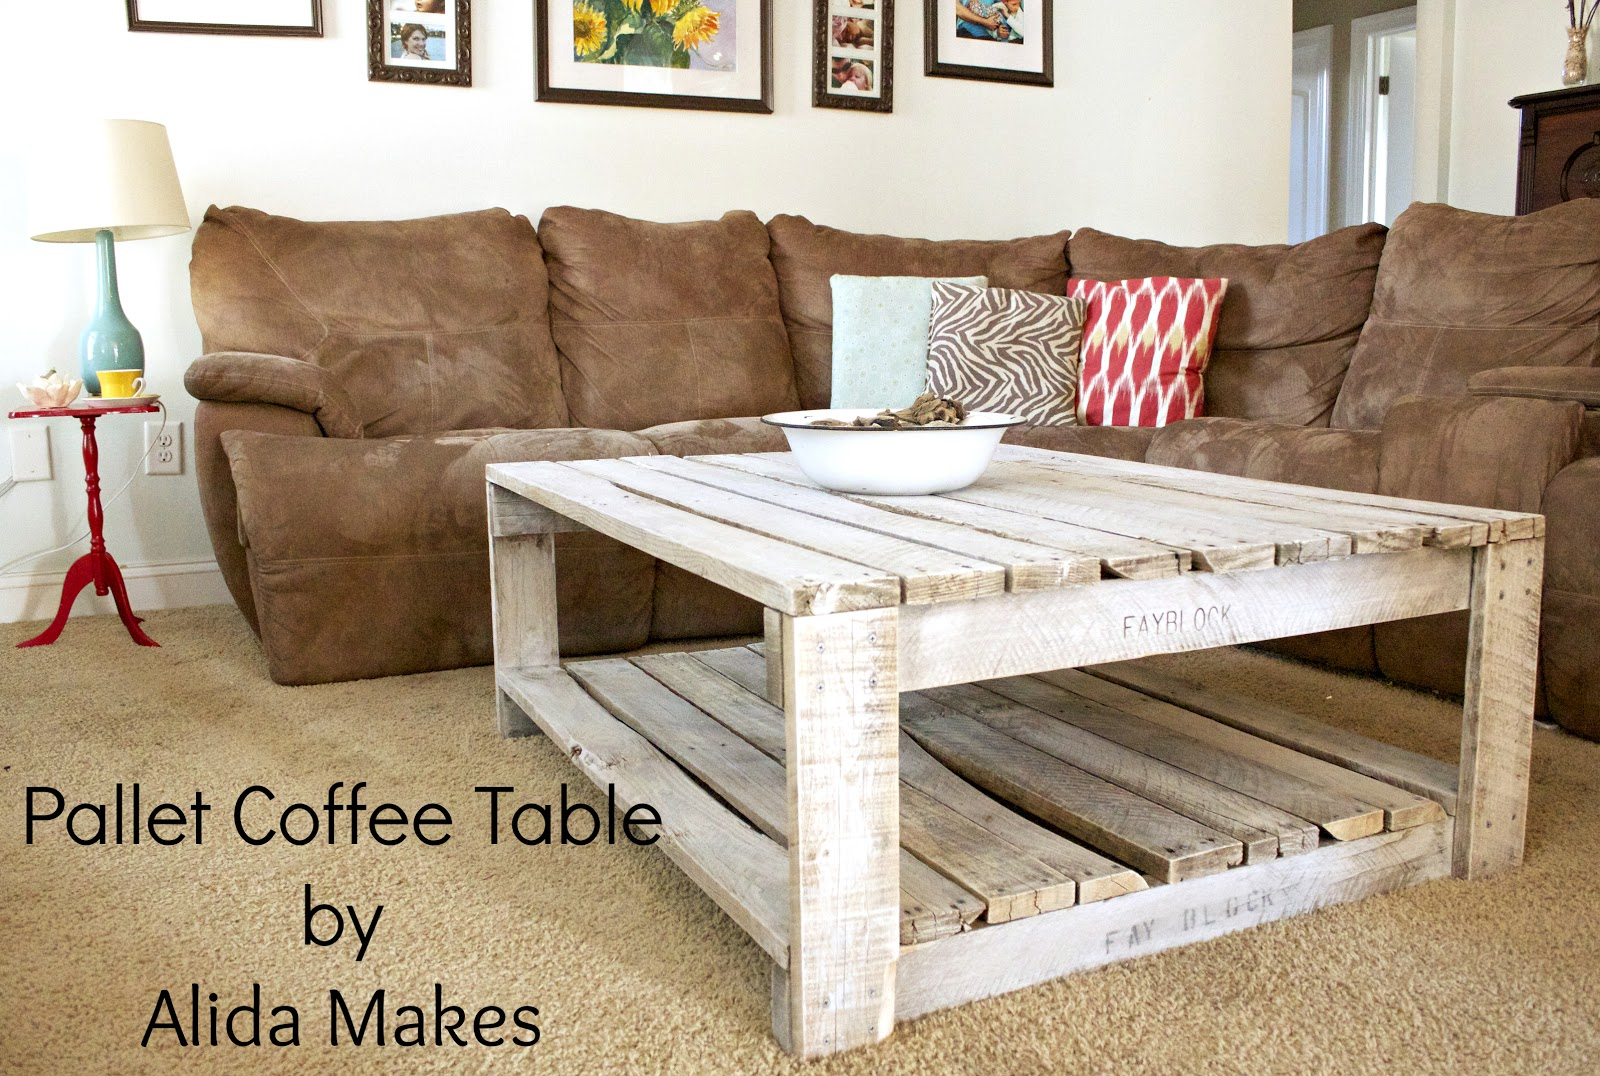 How to Whitewash a Pallet Coffee Table DIY - Alida Makes